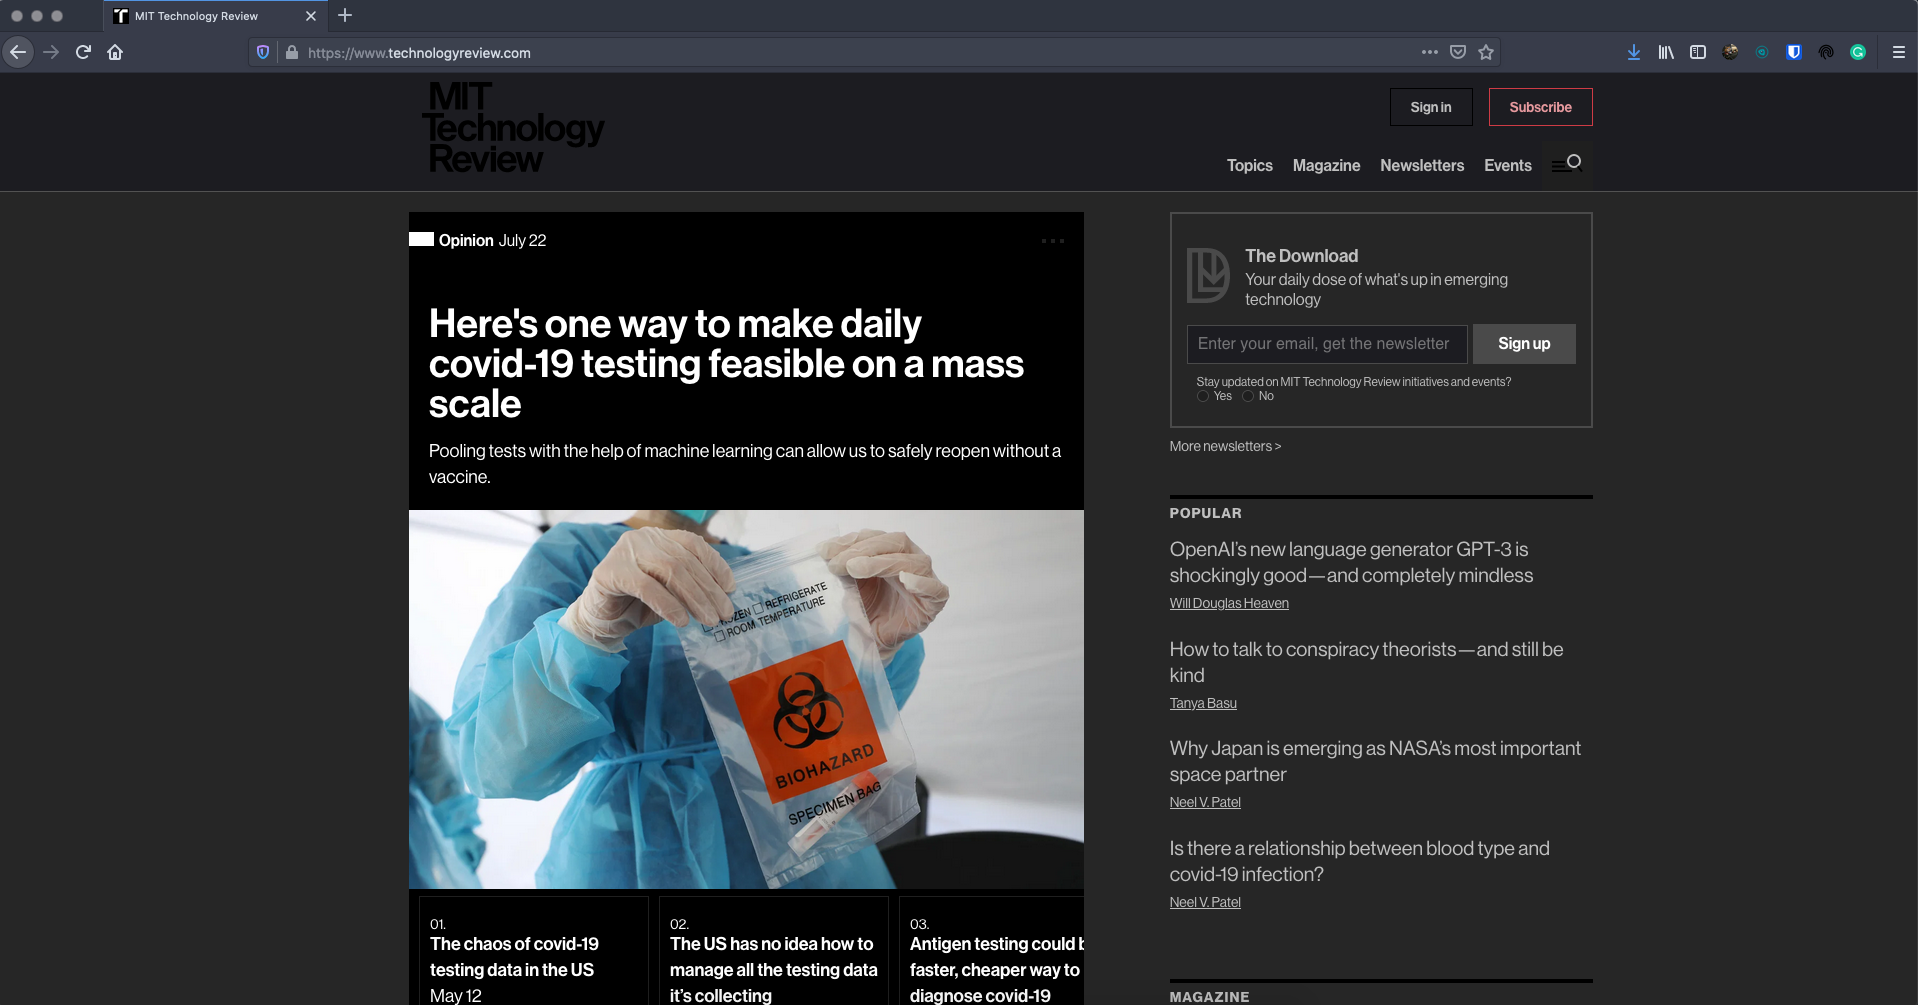 MIT-technology-review-dark-mode-by-night-eye-1